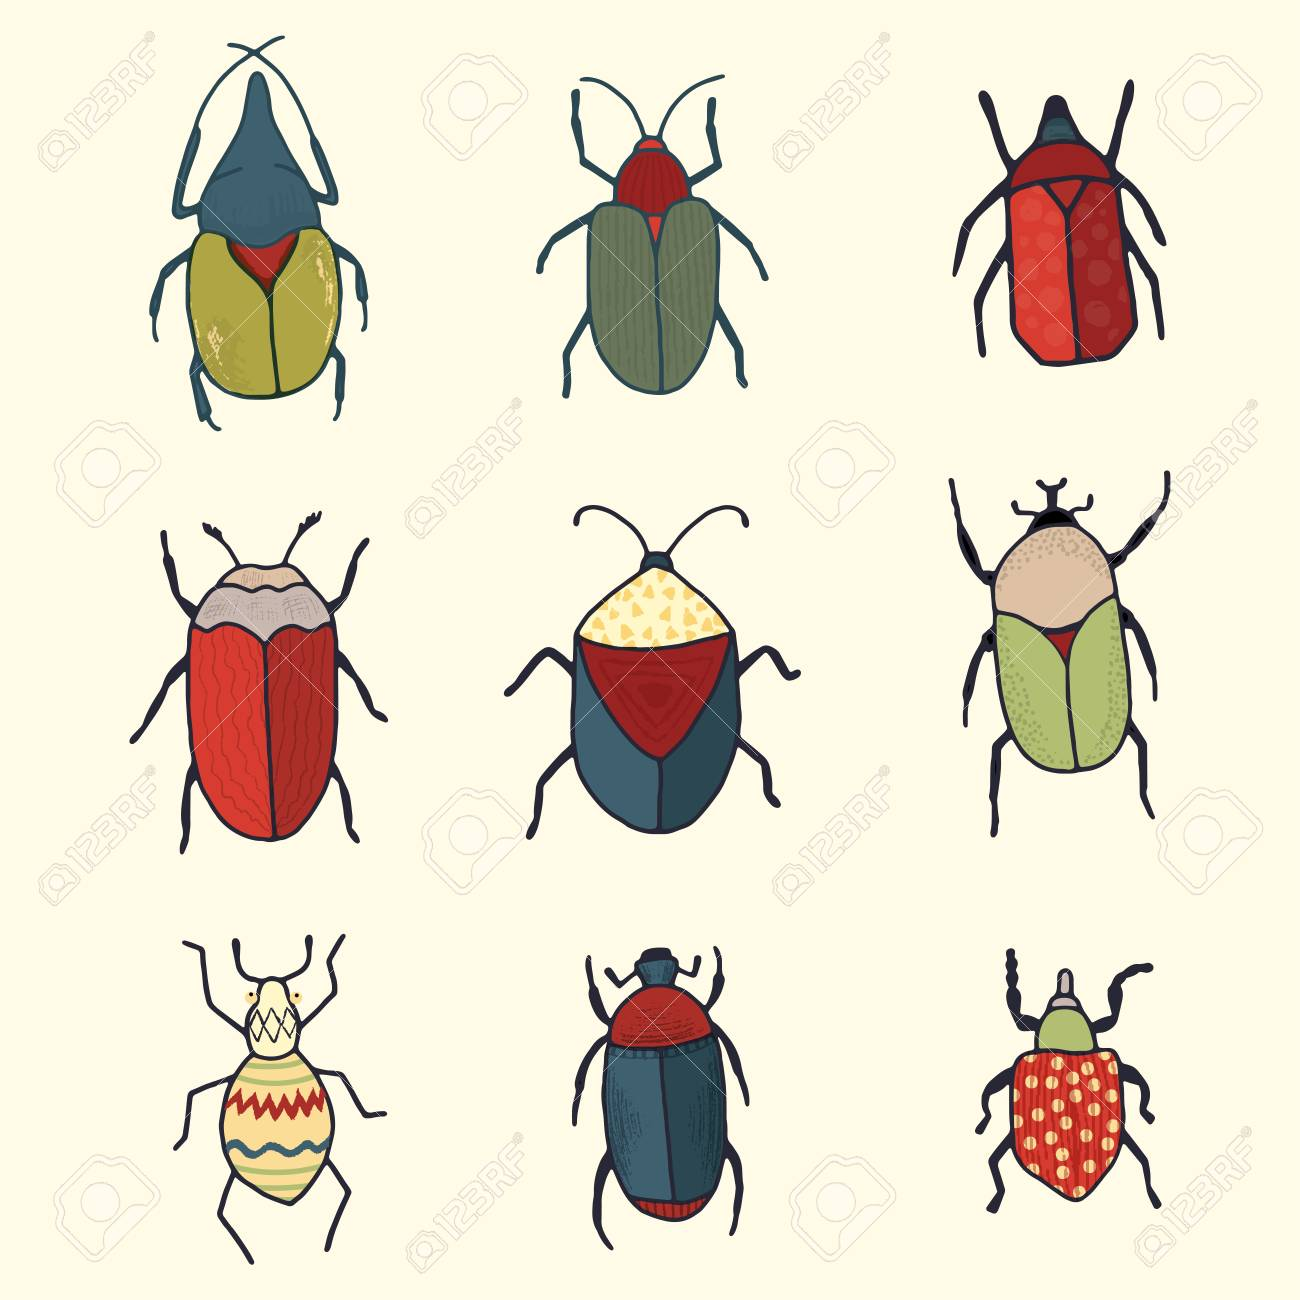 Hand drawn vector clipart set of whimsical cute bugs for scrapbooking...